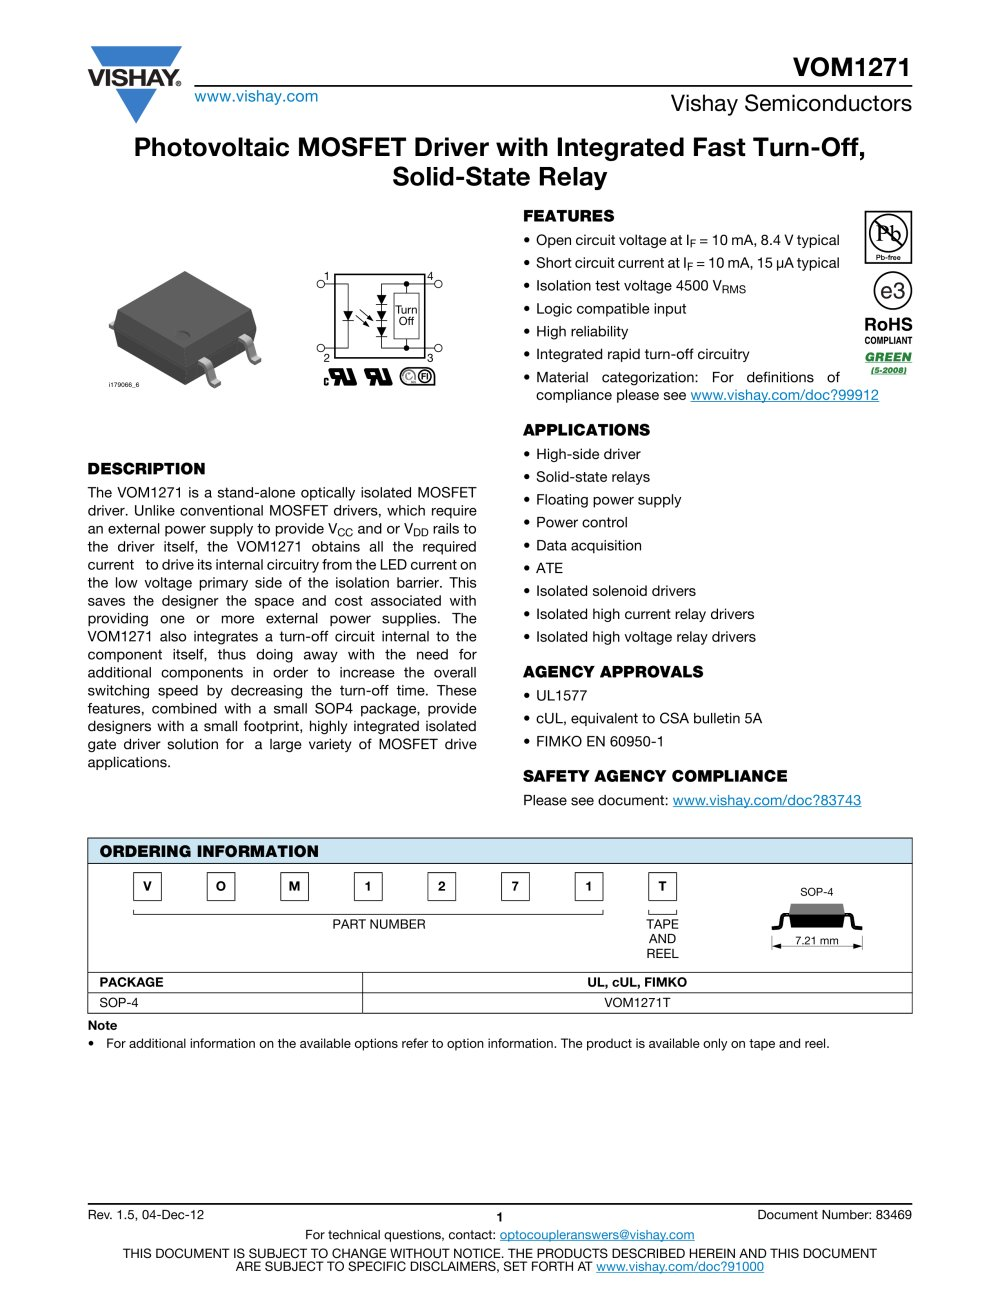 VOM1271 SOLIDSTATE RELAYS VISHAY PDF Catalogue Technical